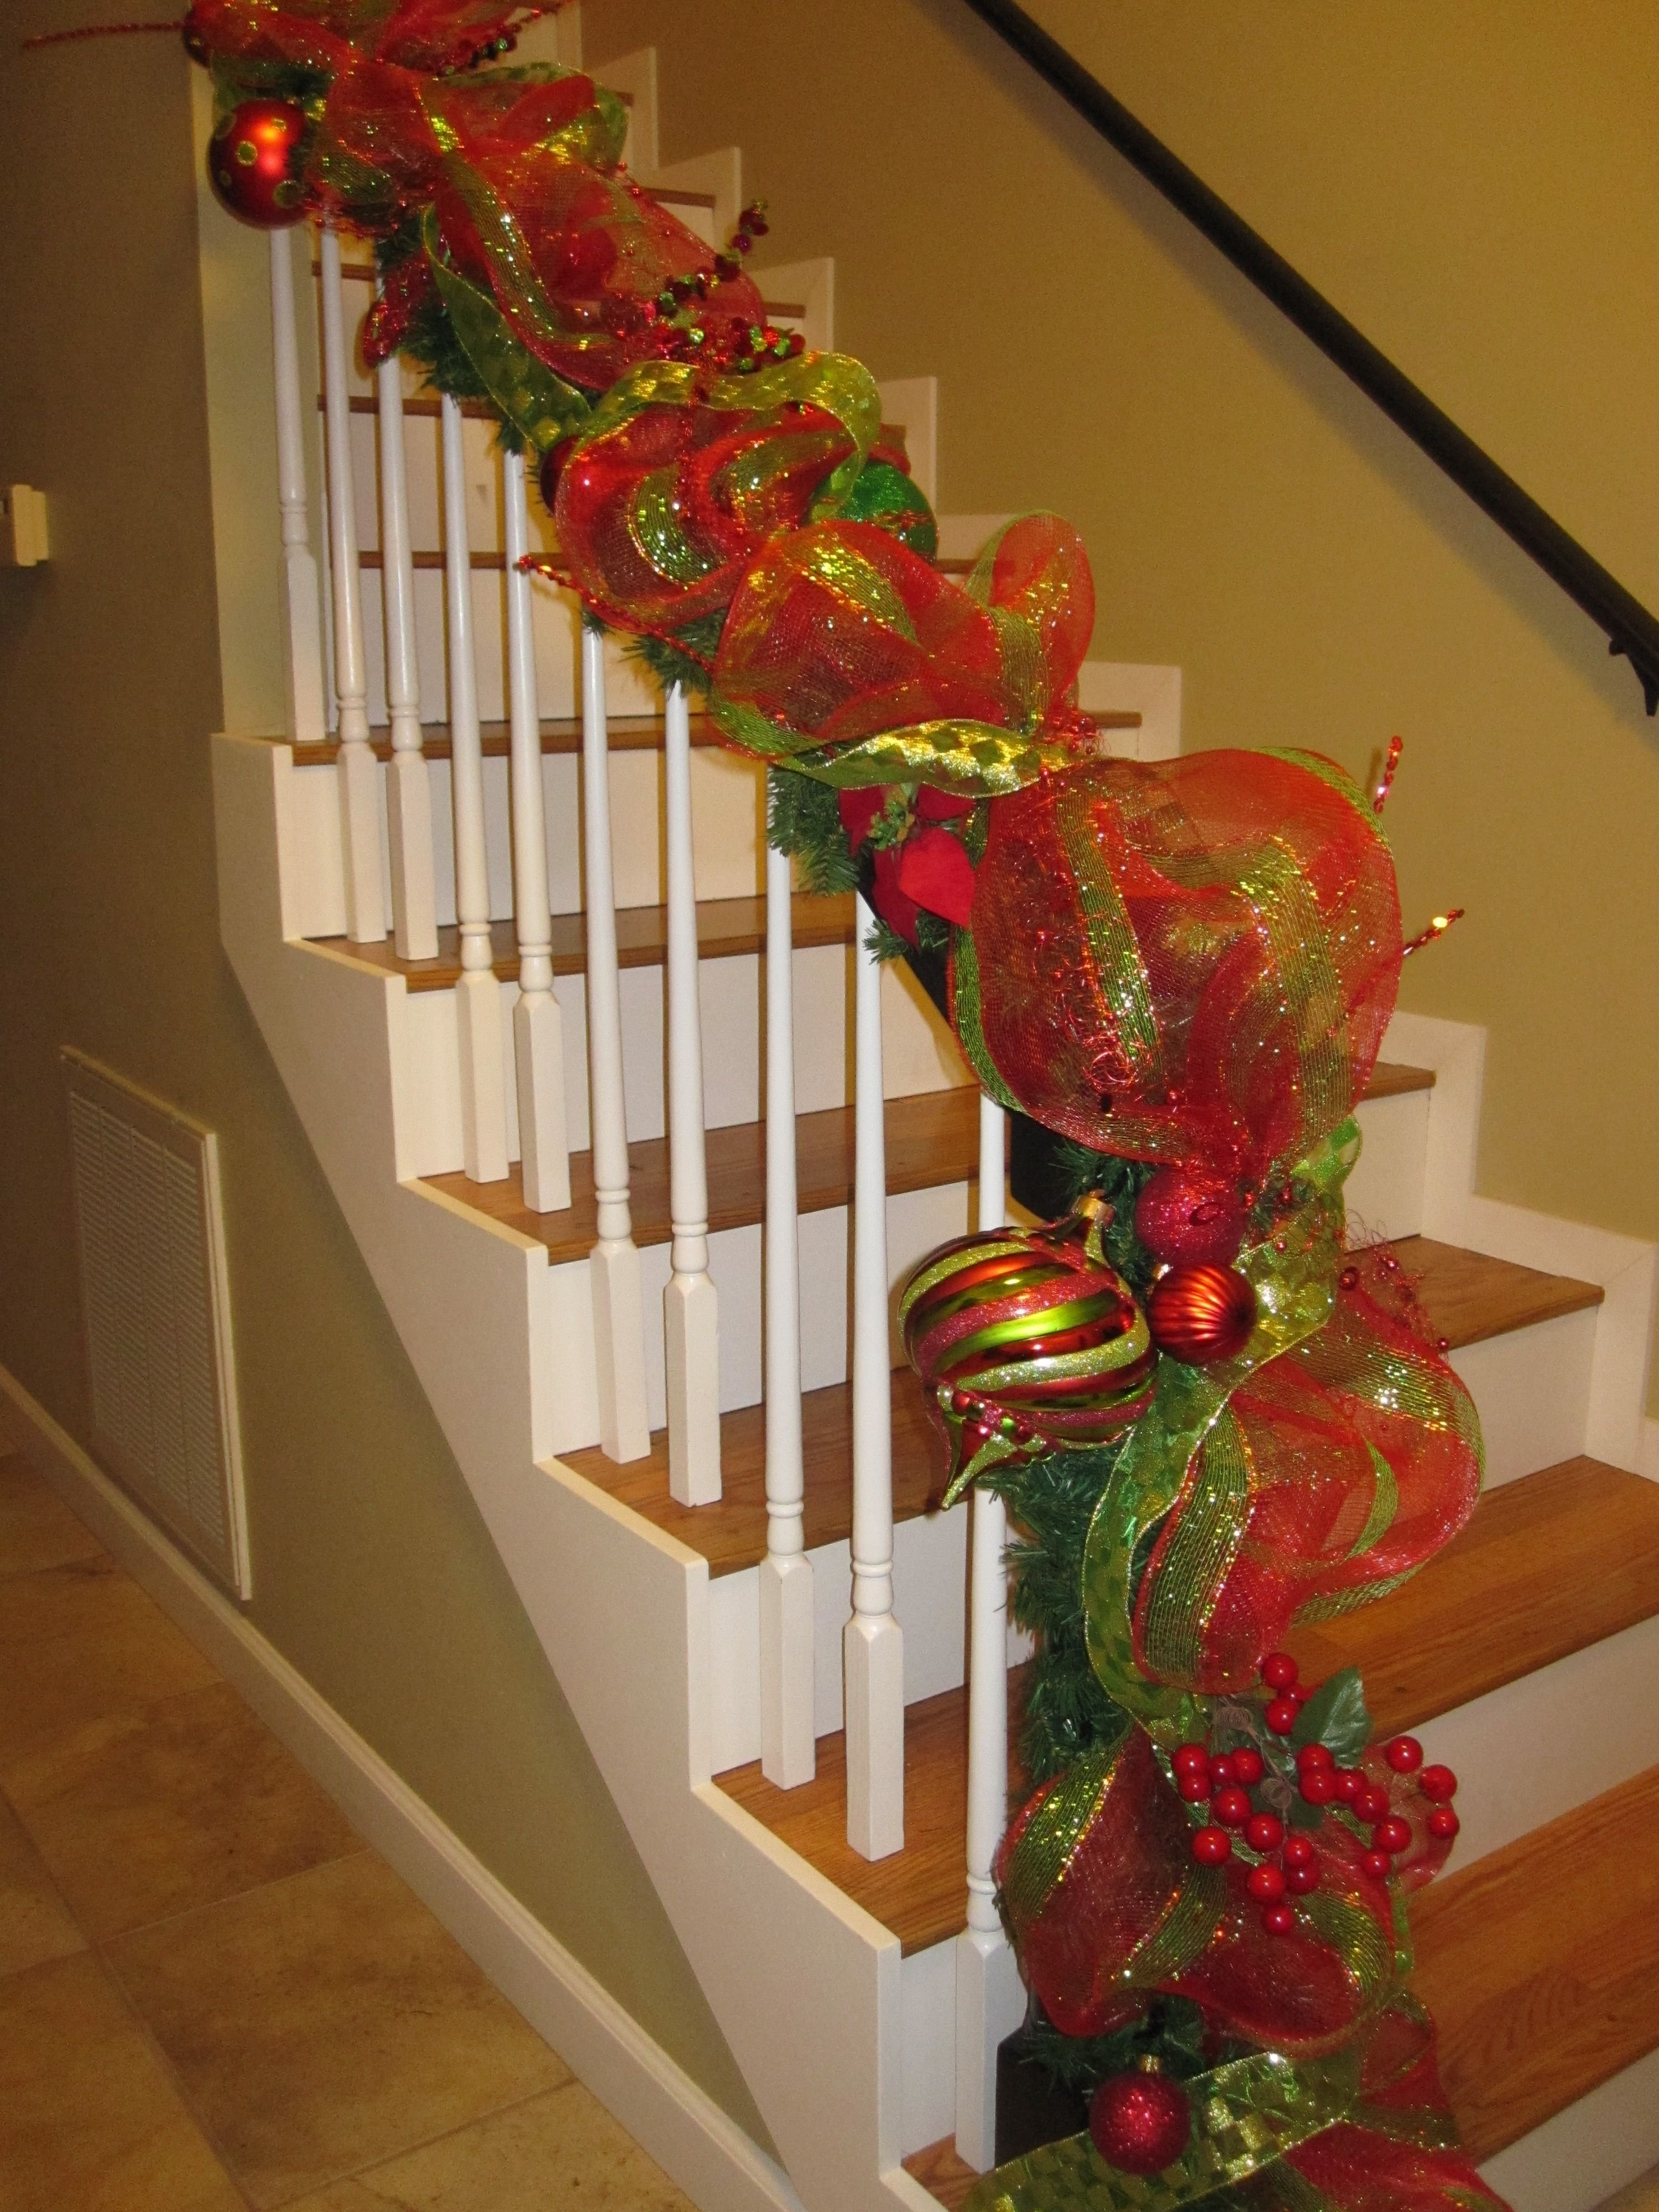 10 Fabulous Decorating With Mesh Ribbon Ideas trees decorated deco mesh garland oh what fun blog creating 2021